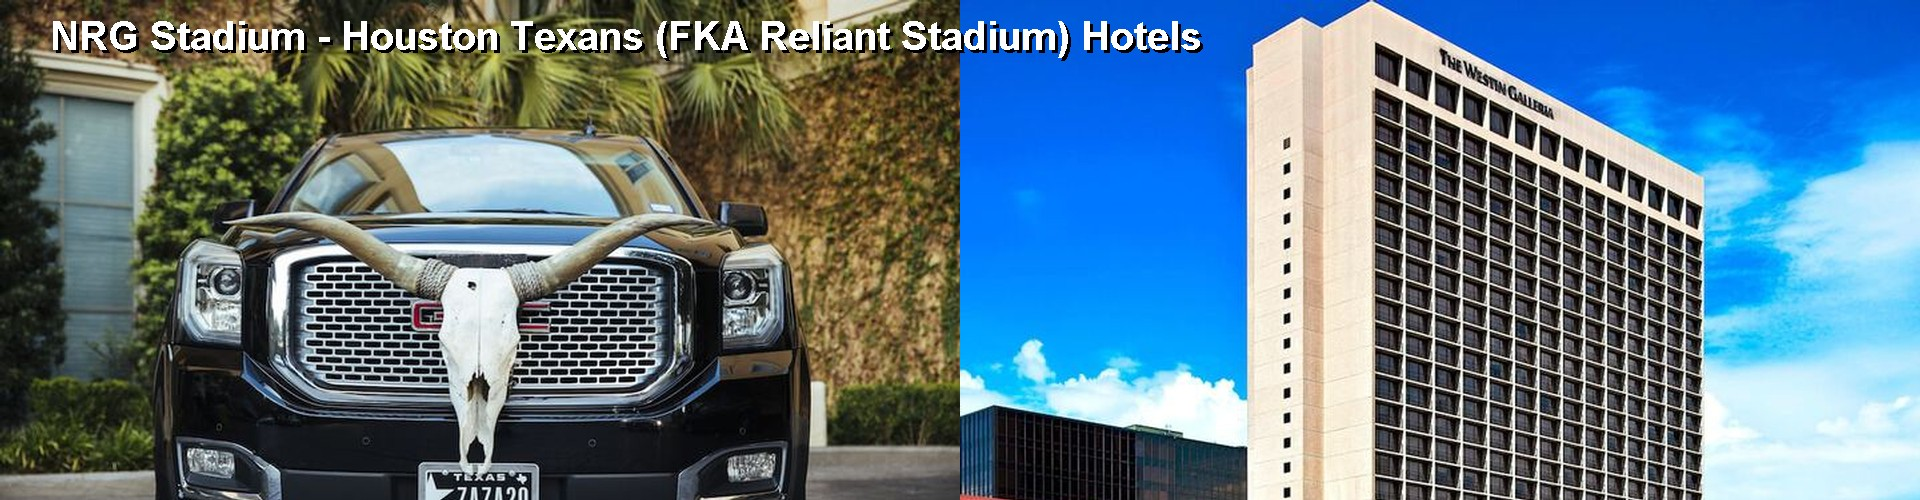 5 Best Hotels near NRG Stadium - Houston Texans (FKA Reliant Stadium)